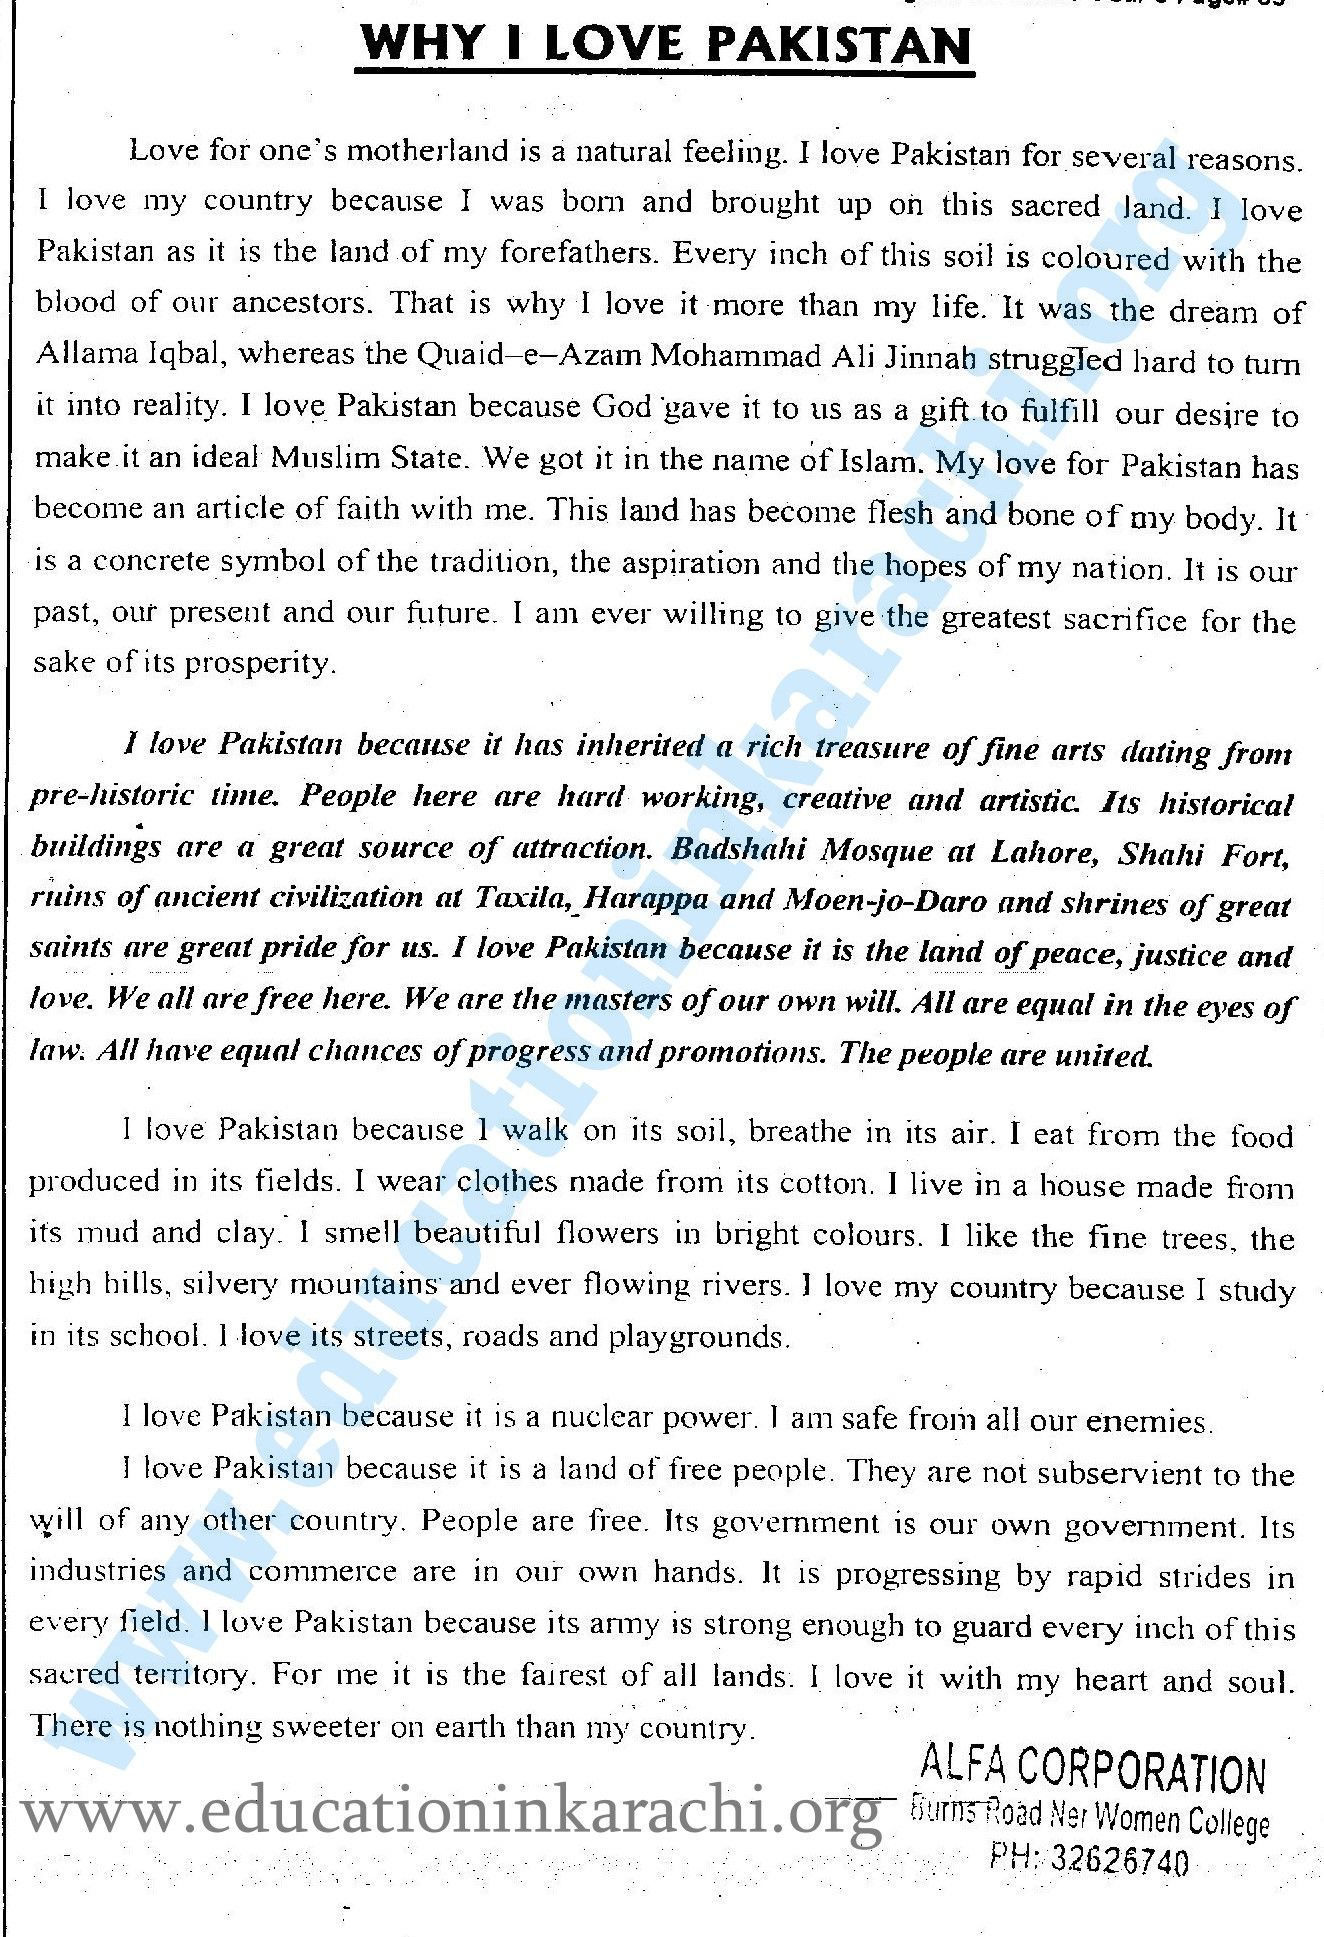 Why I Love Pakistan Essay Practical Centre Ssc Education In Karachi Islamic Inspirational Quote My Voice Of Democracy Winning Example